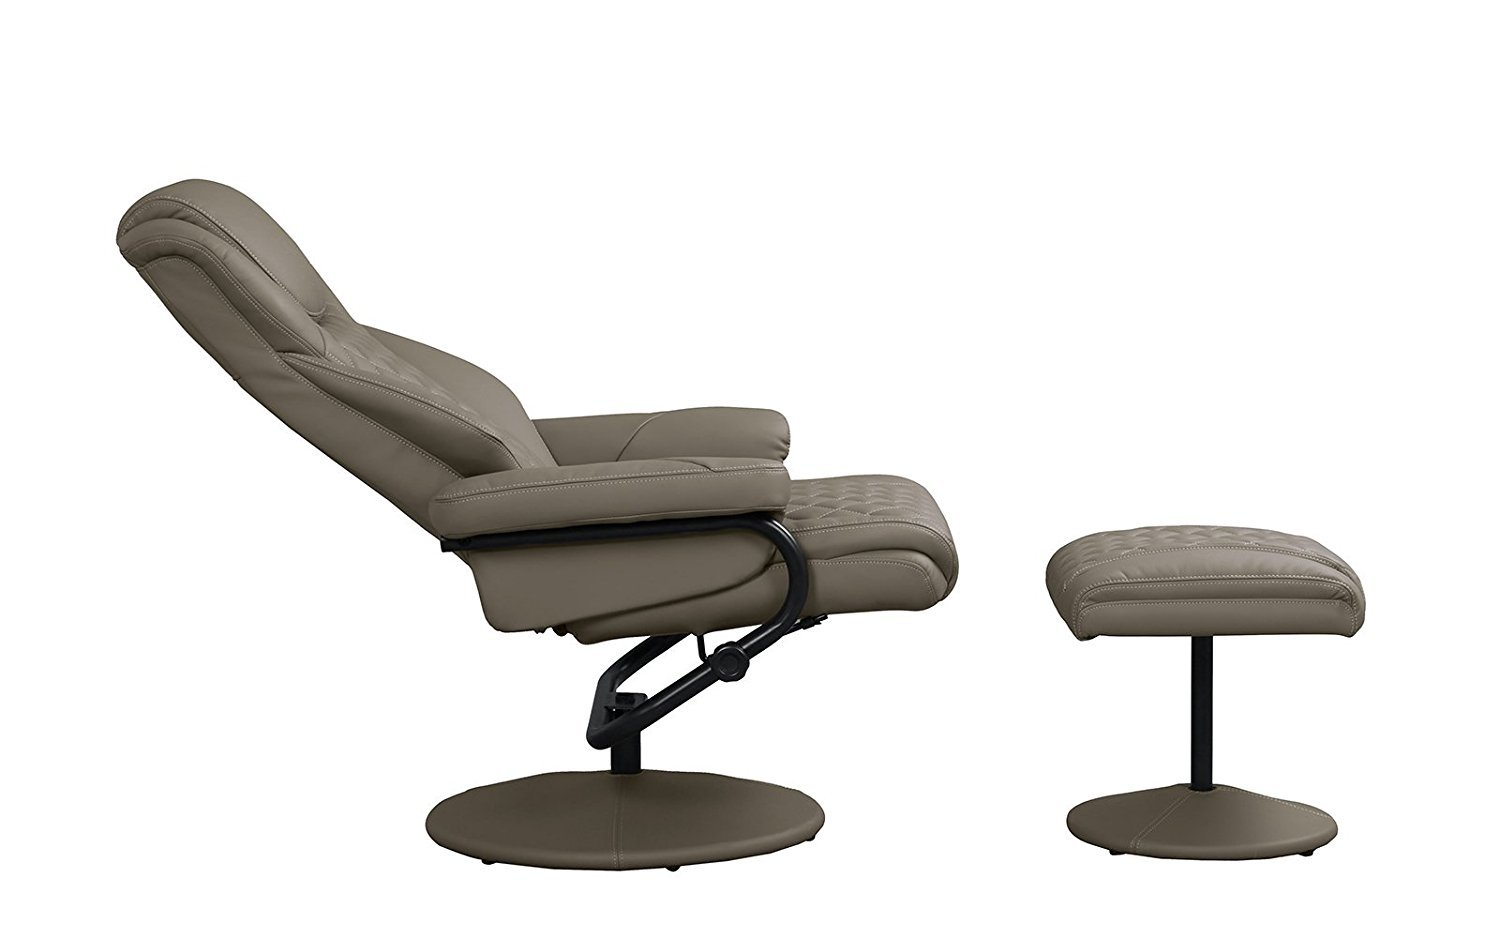 Details About Office Swivel Chair With Footstool Faux Leather Reclining Executive Chair Brown